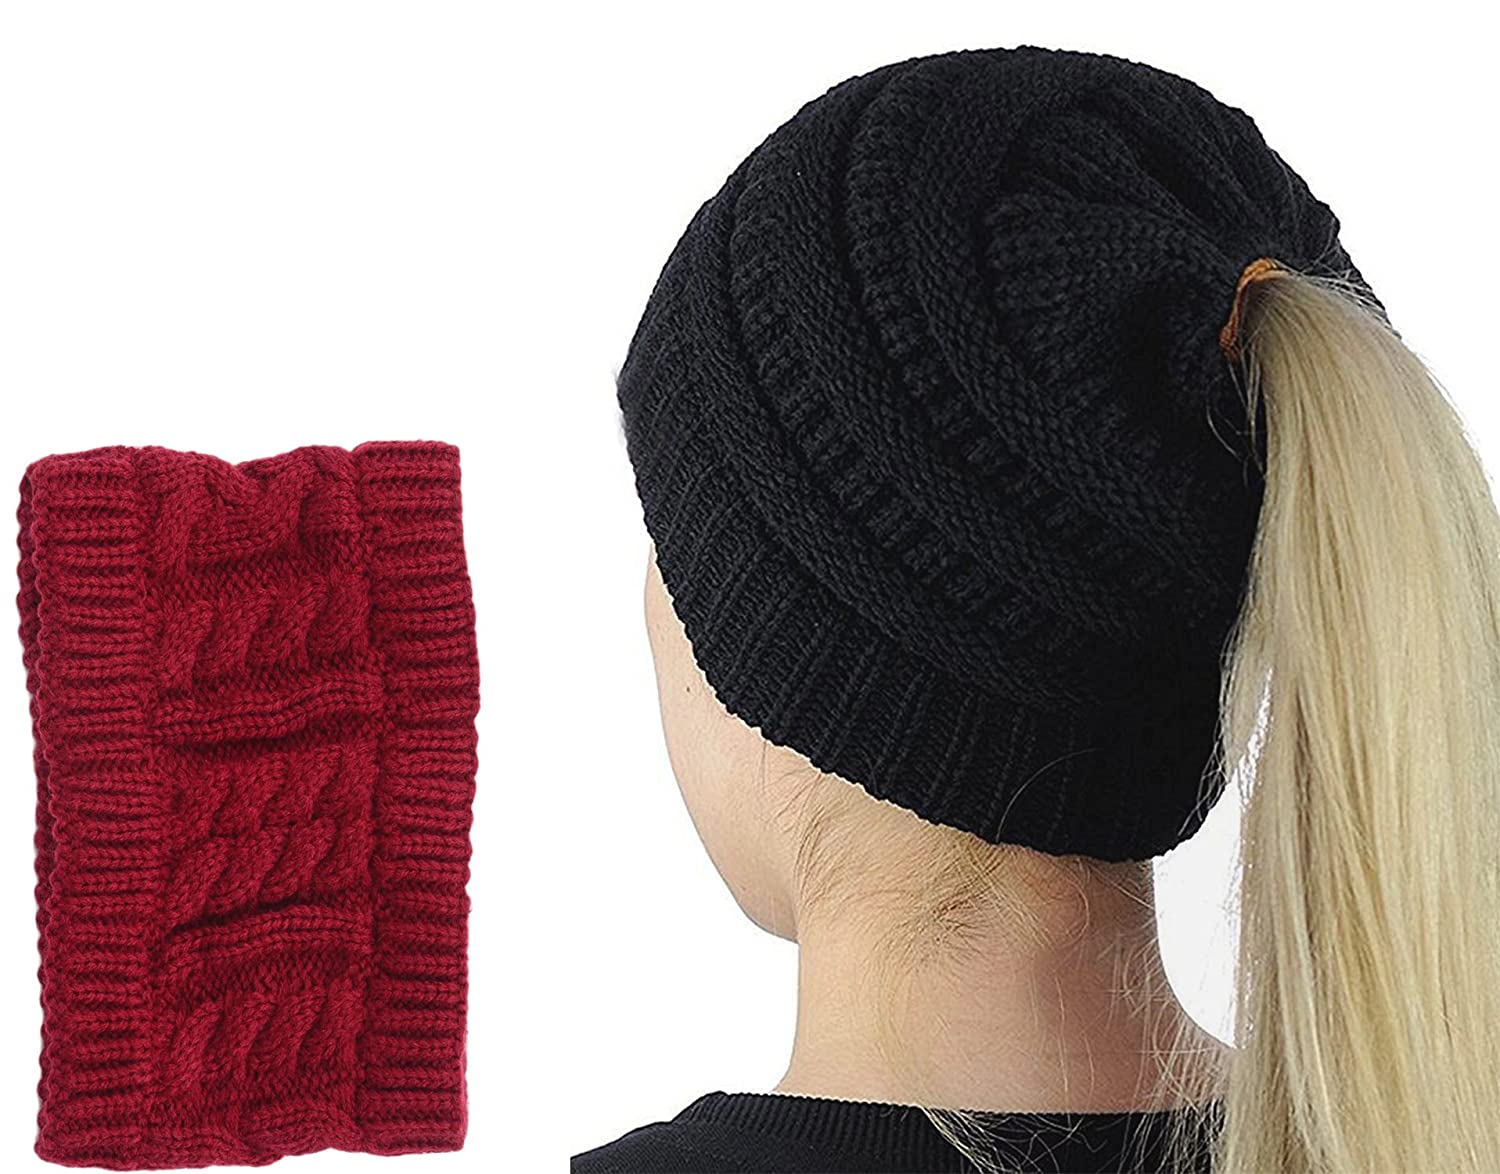 Beard Hat Beanie Hat Knit Skull Hat Winter Warm Octopus Hat Cable Knit High Bun Ponytail Hat Windproof Funny for Men & Women One Size Black hat-us-black